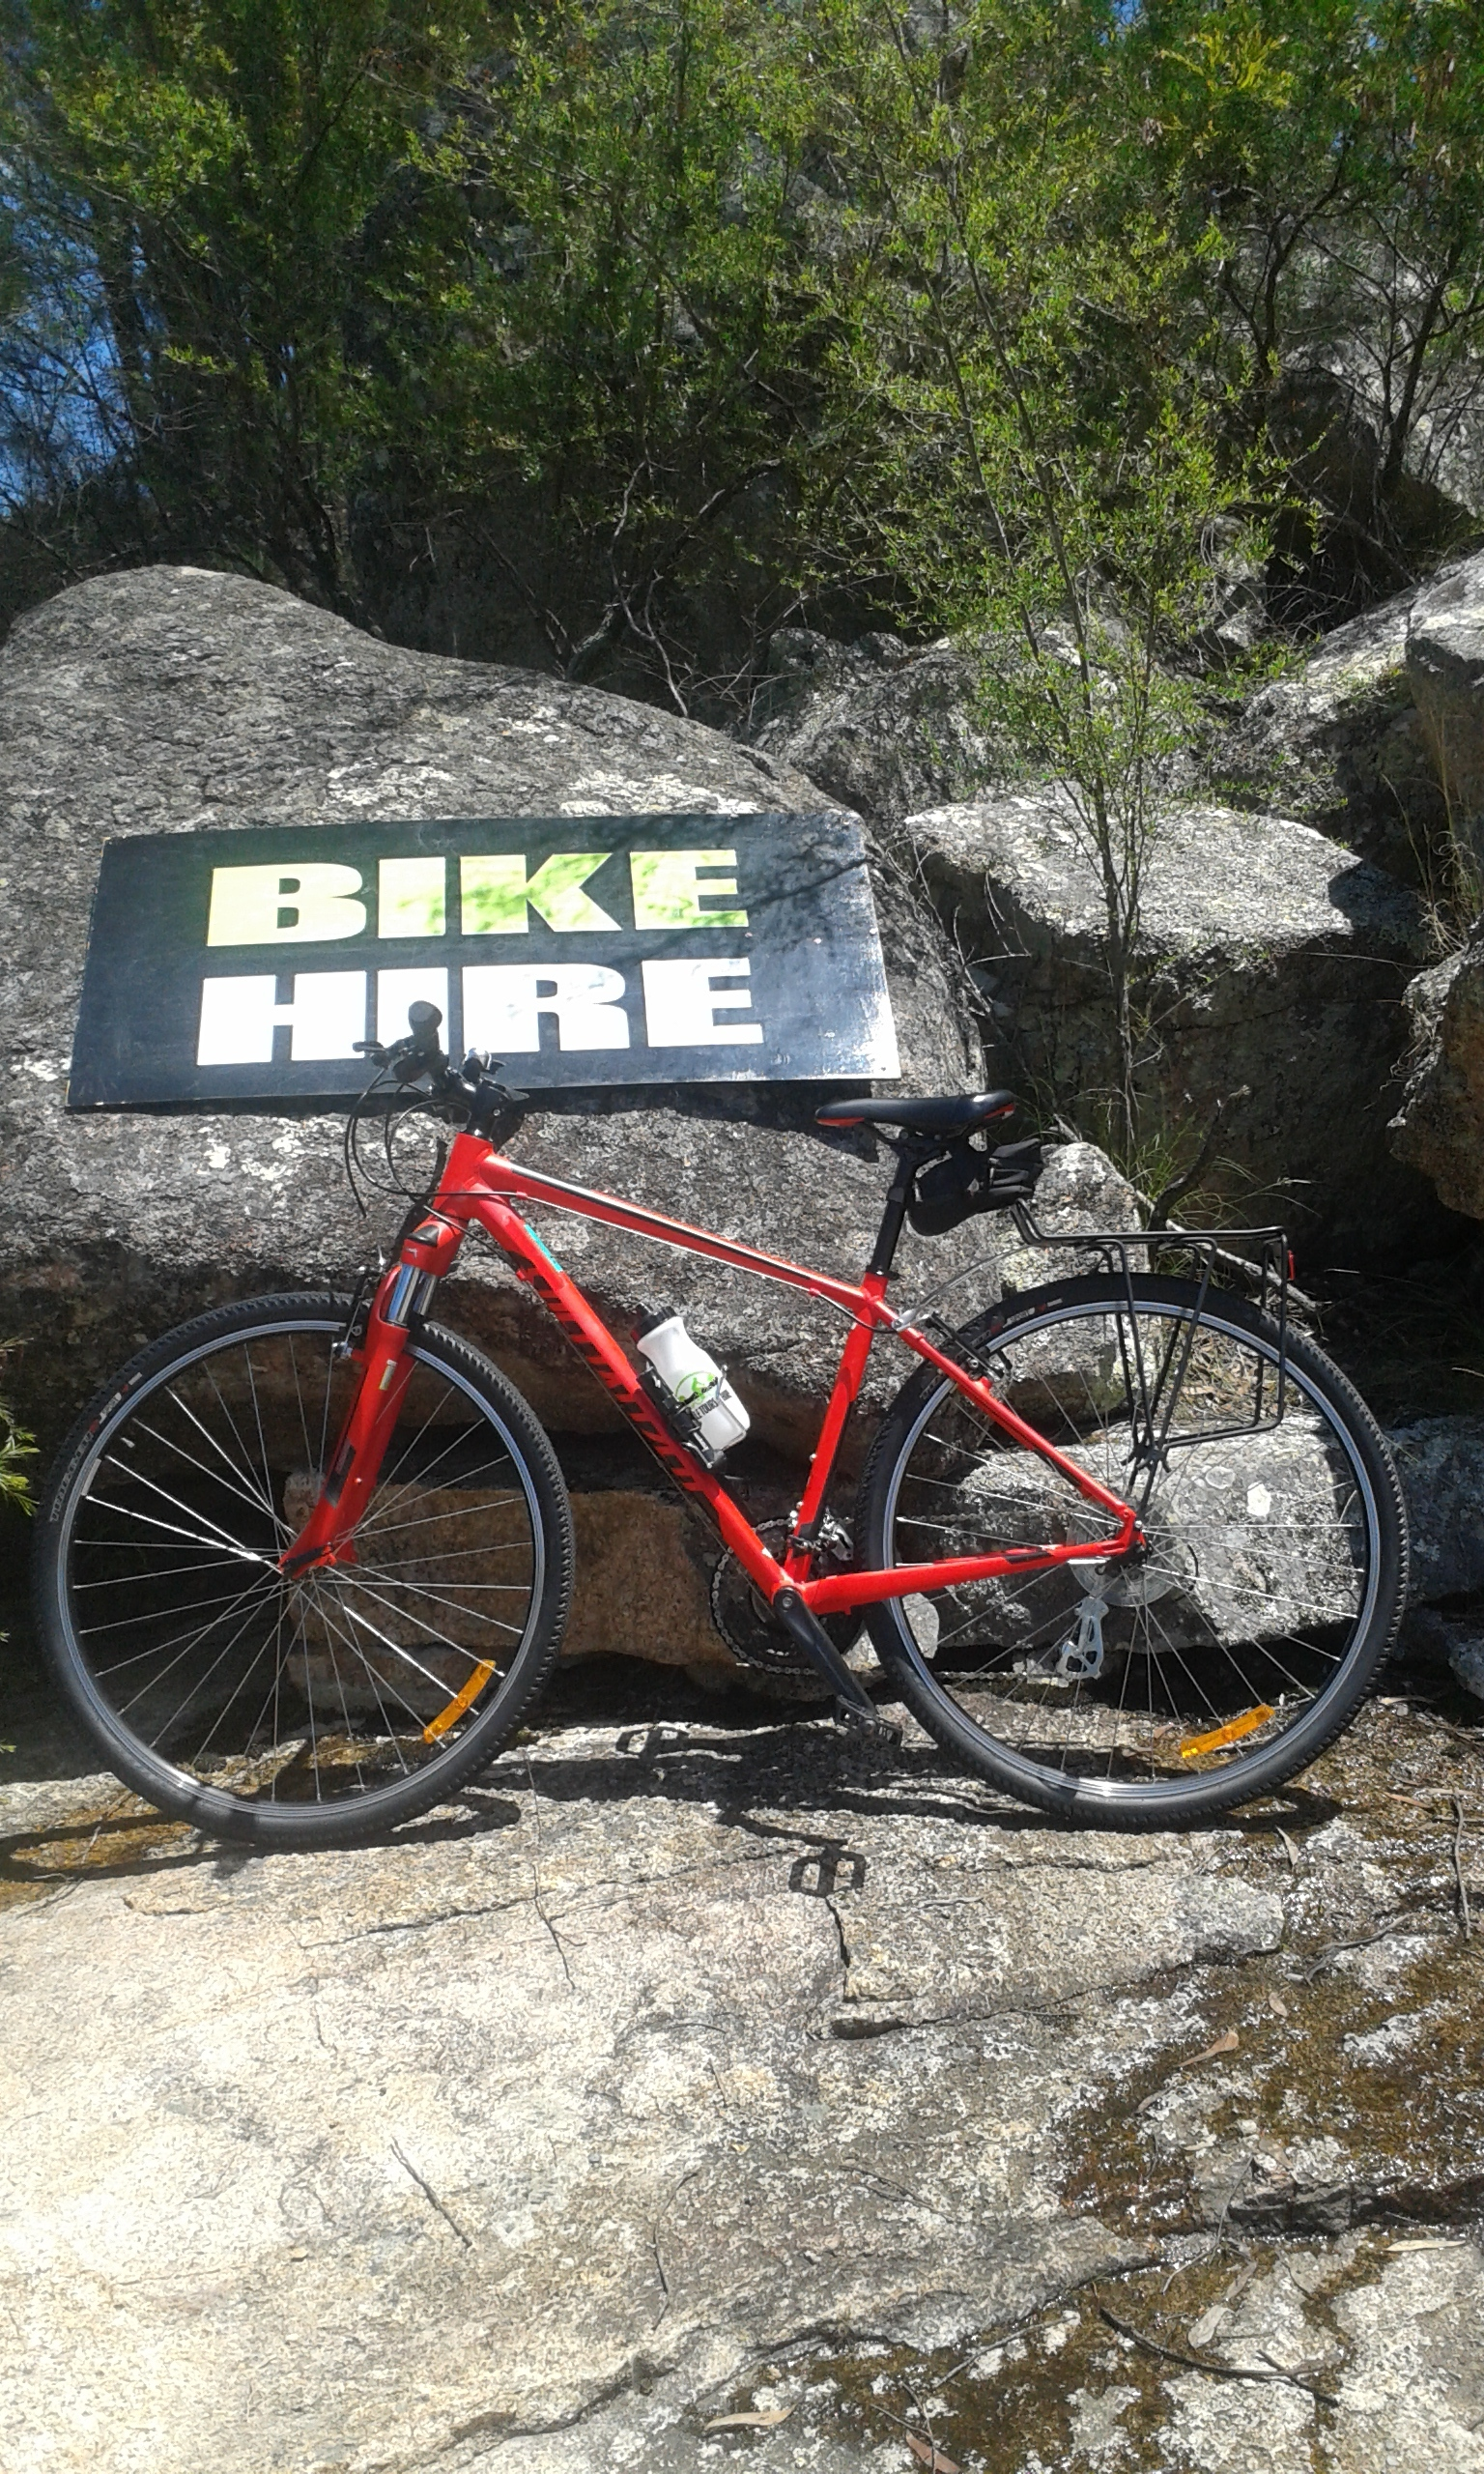 Red Specialized Crosstrail leaning again granite rock with bike hire sign behind.